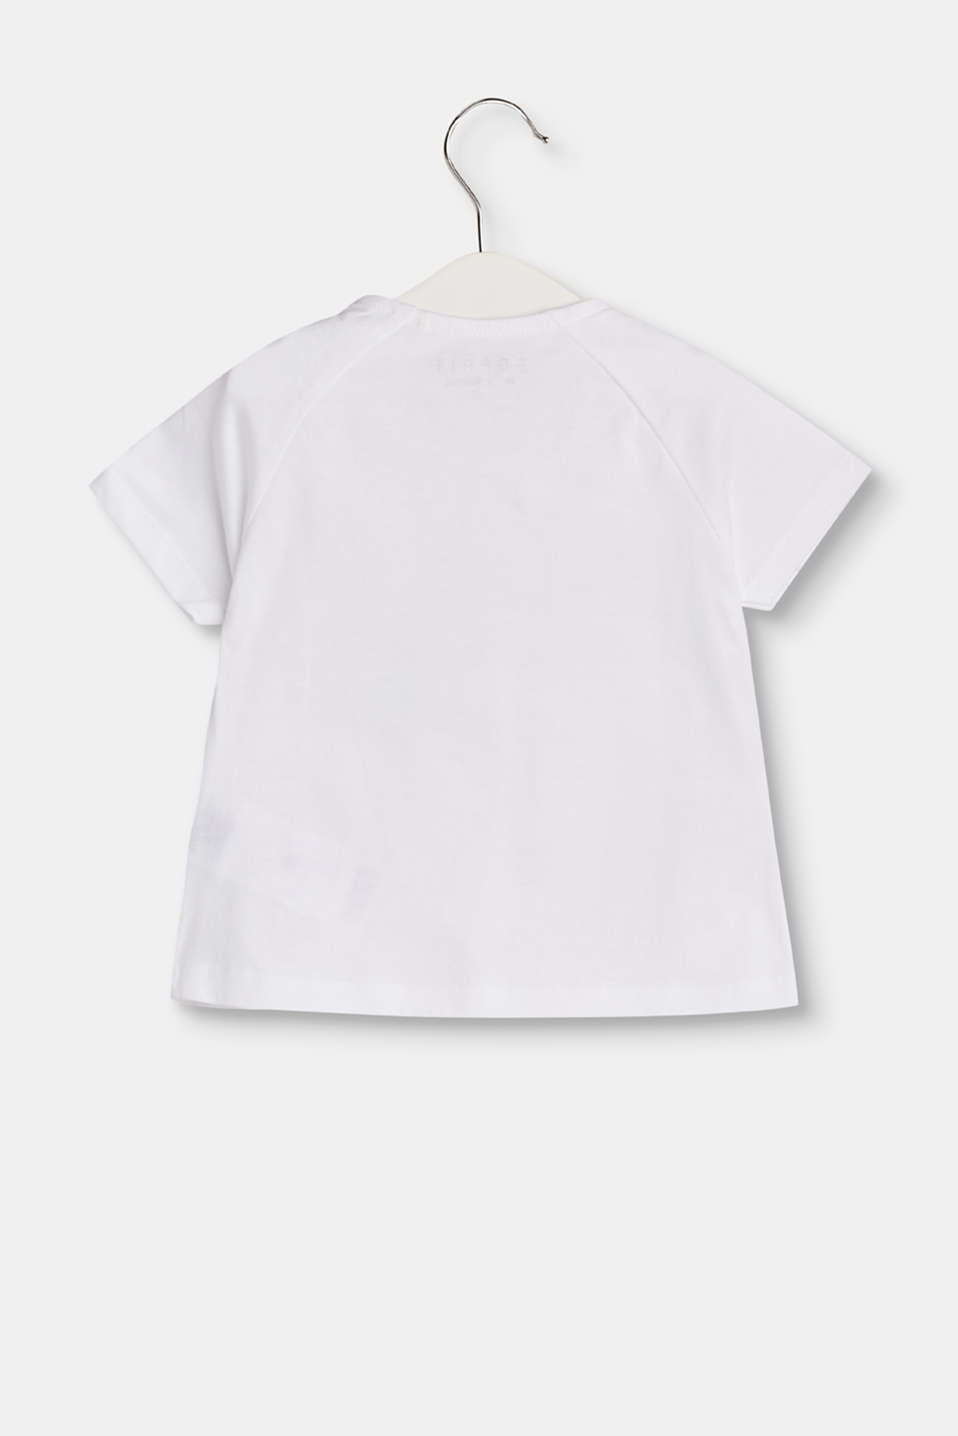 T-shirt with summery print, cotton